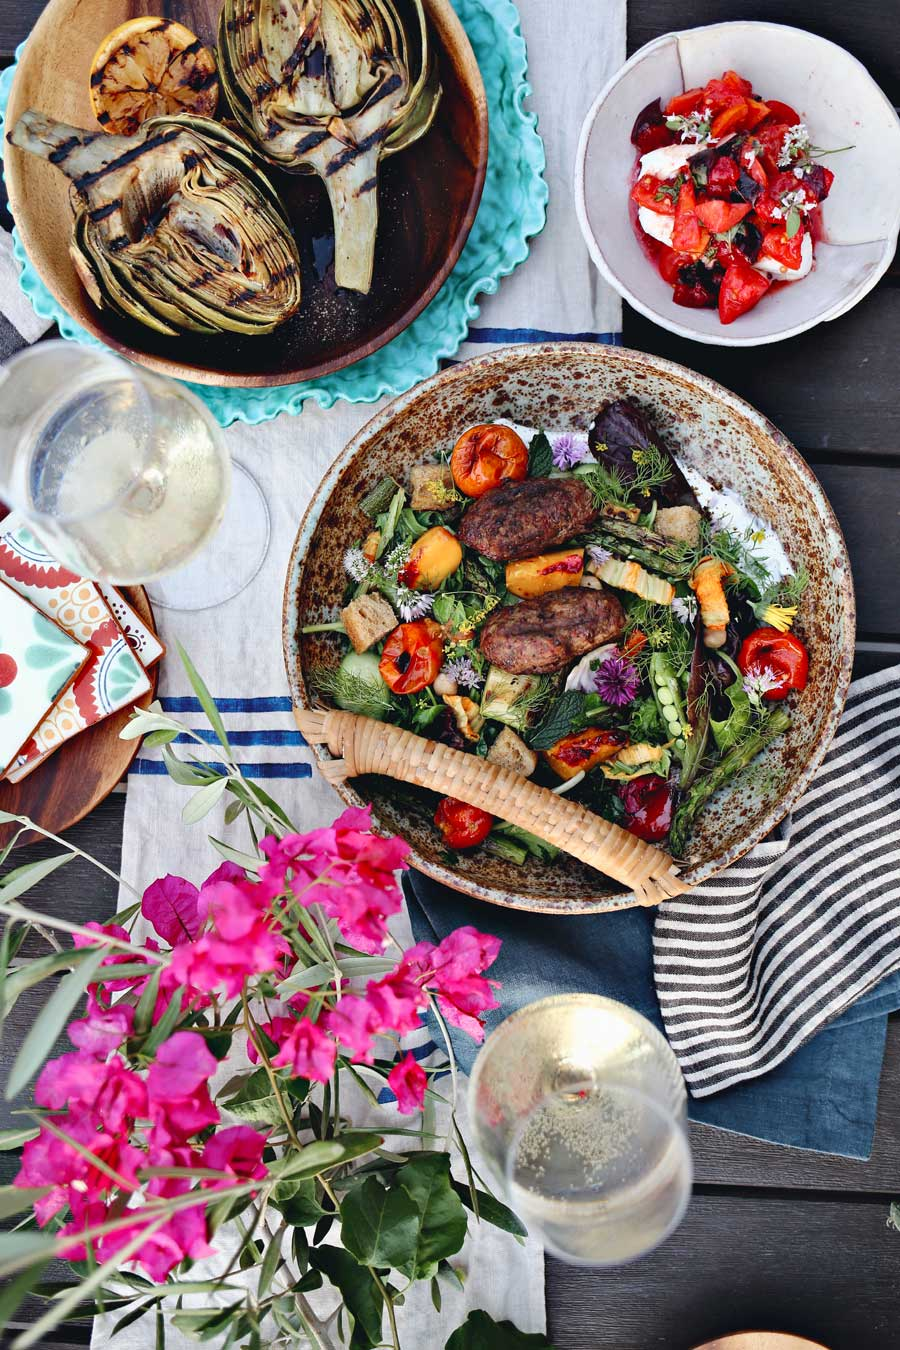 Meet the SAVEUR Blog Awards Finalists: 6 Essential Entertaining Blogs